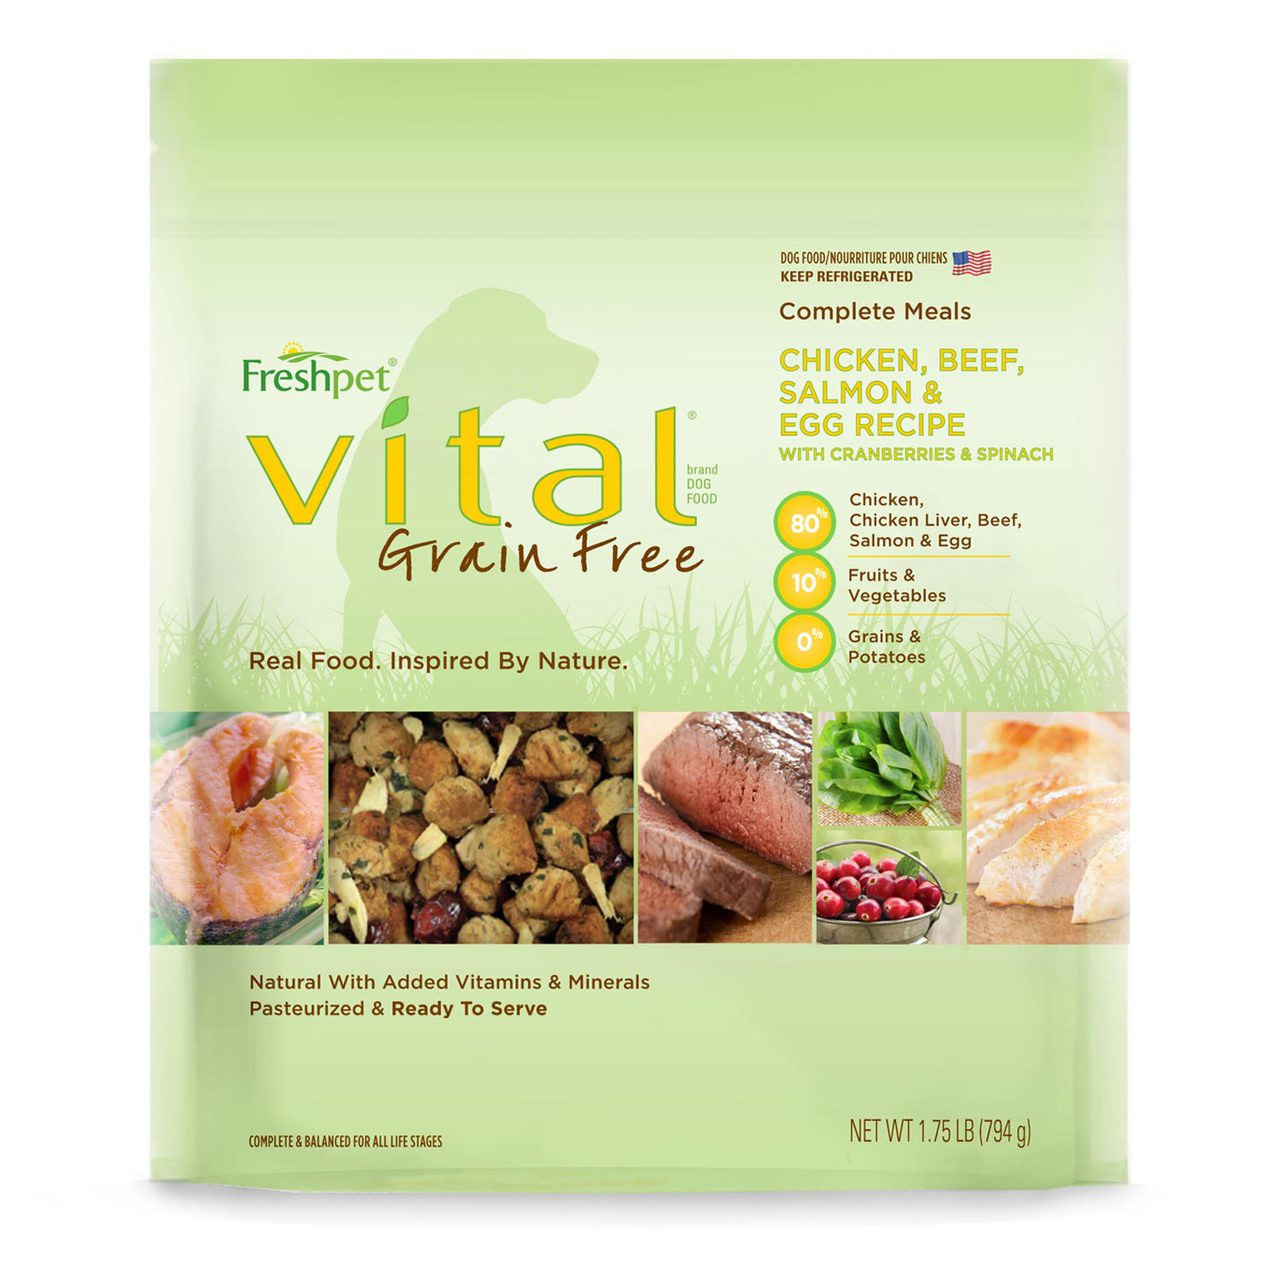 Freshpet vital chicken beef salmon egg with cranberries image 1 forumfinder Images